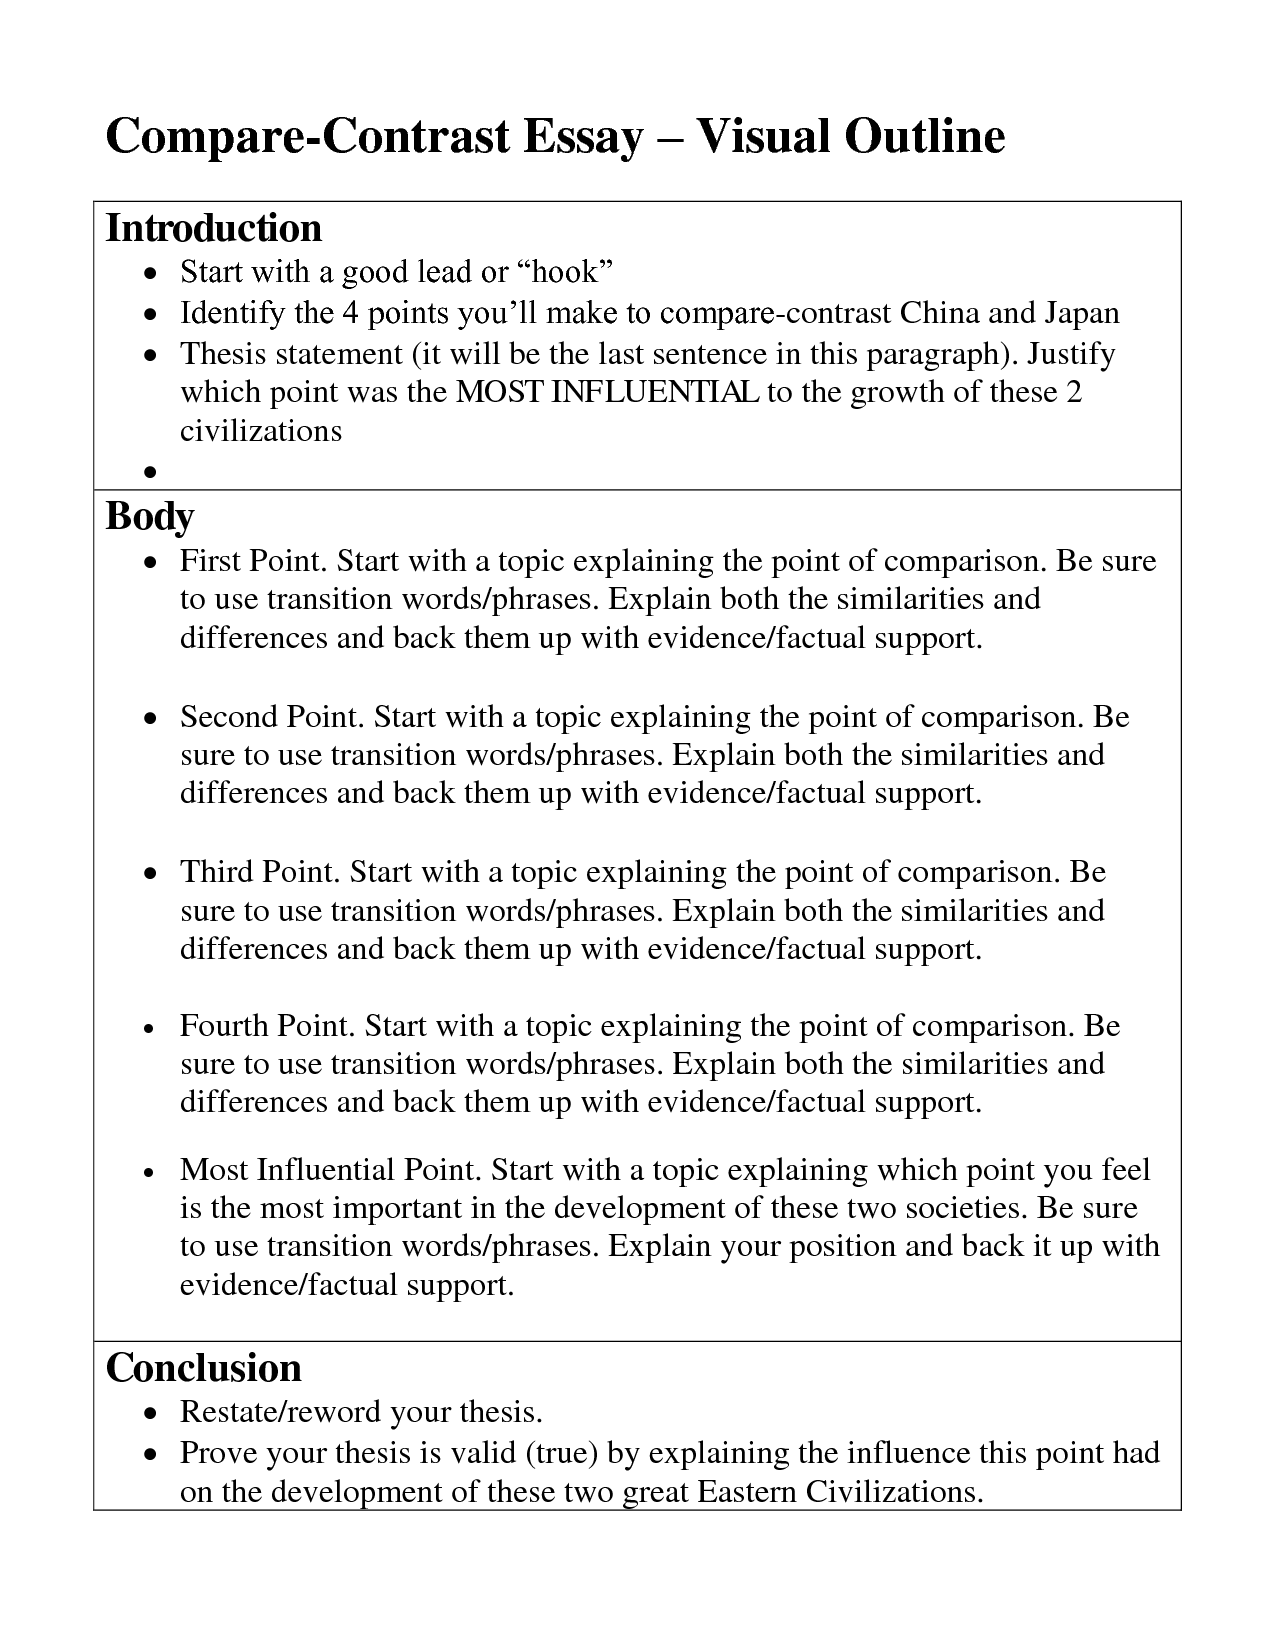 004 Comparison And Contrast Essay Outline Impressive Compare Format Middle School Worksheet Pdf Examples